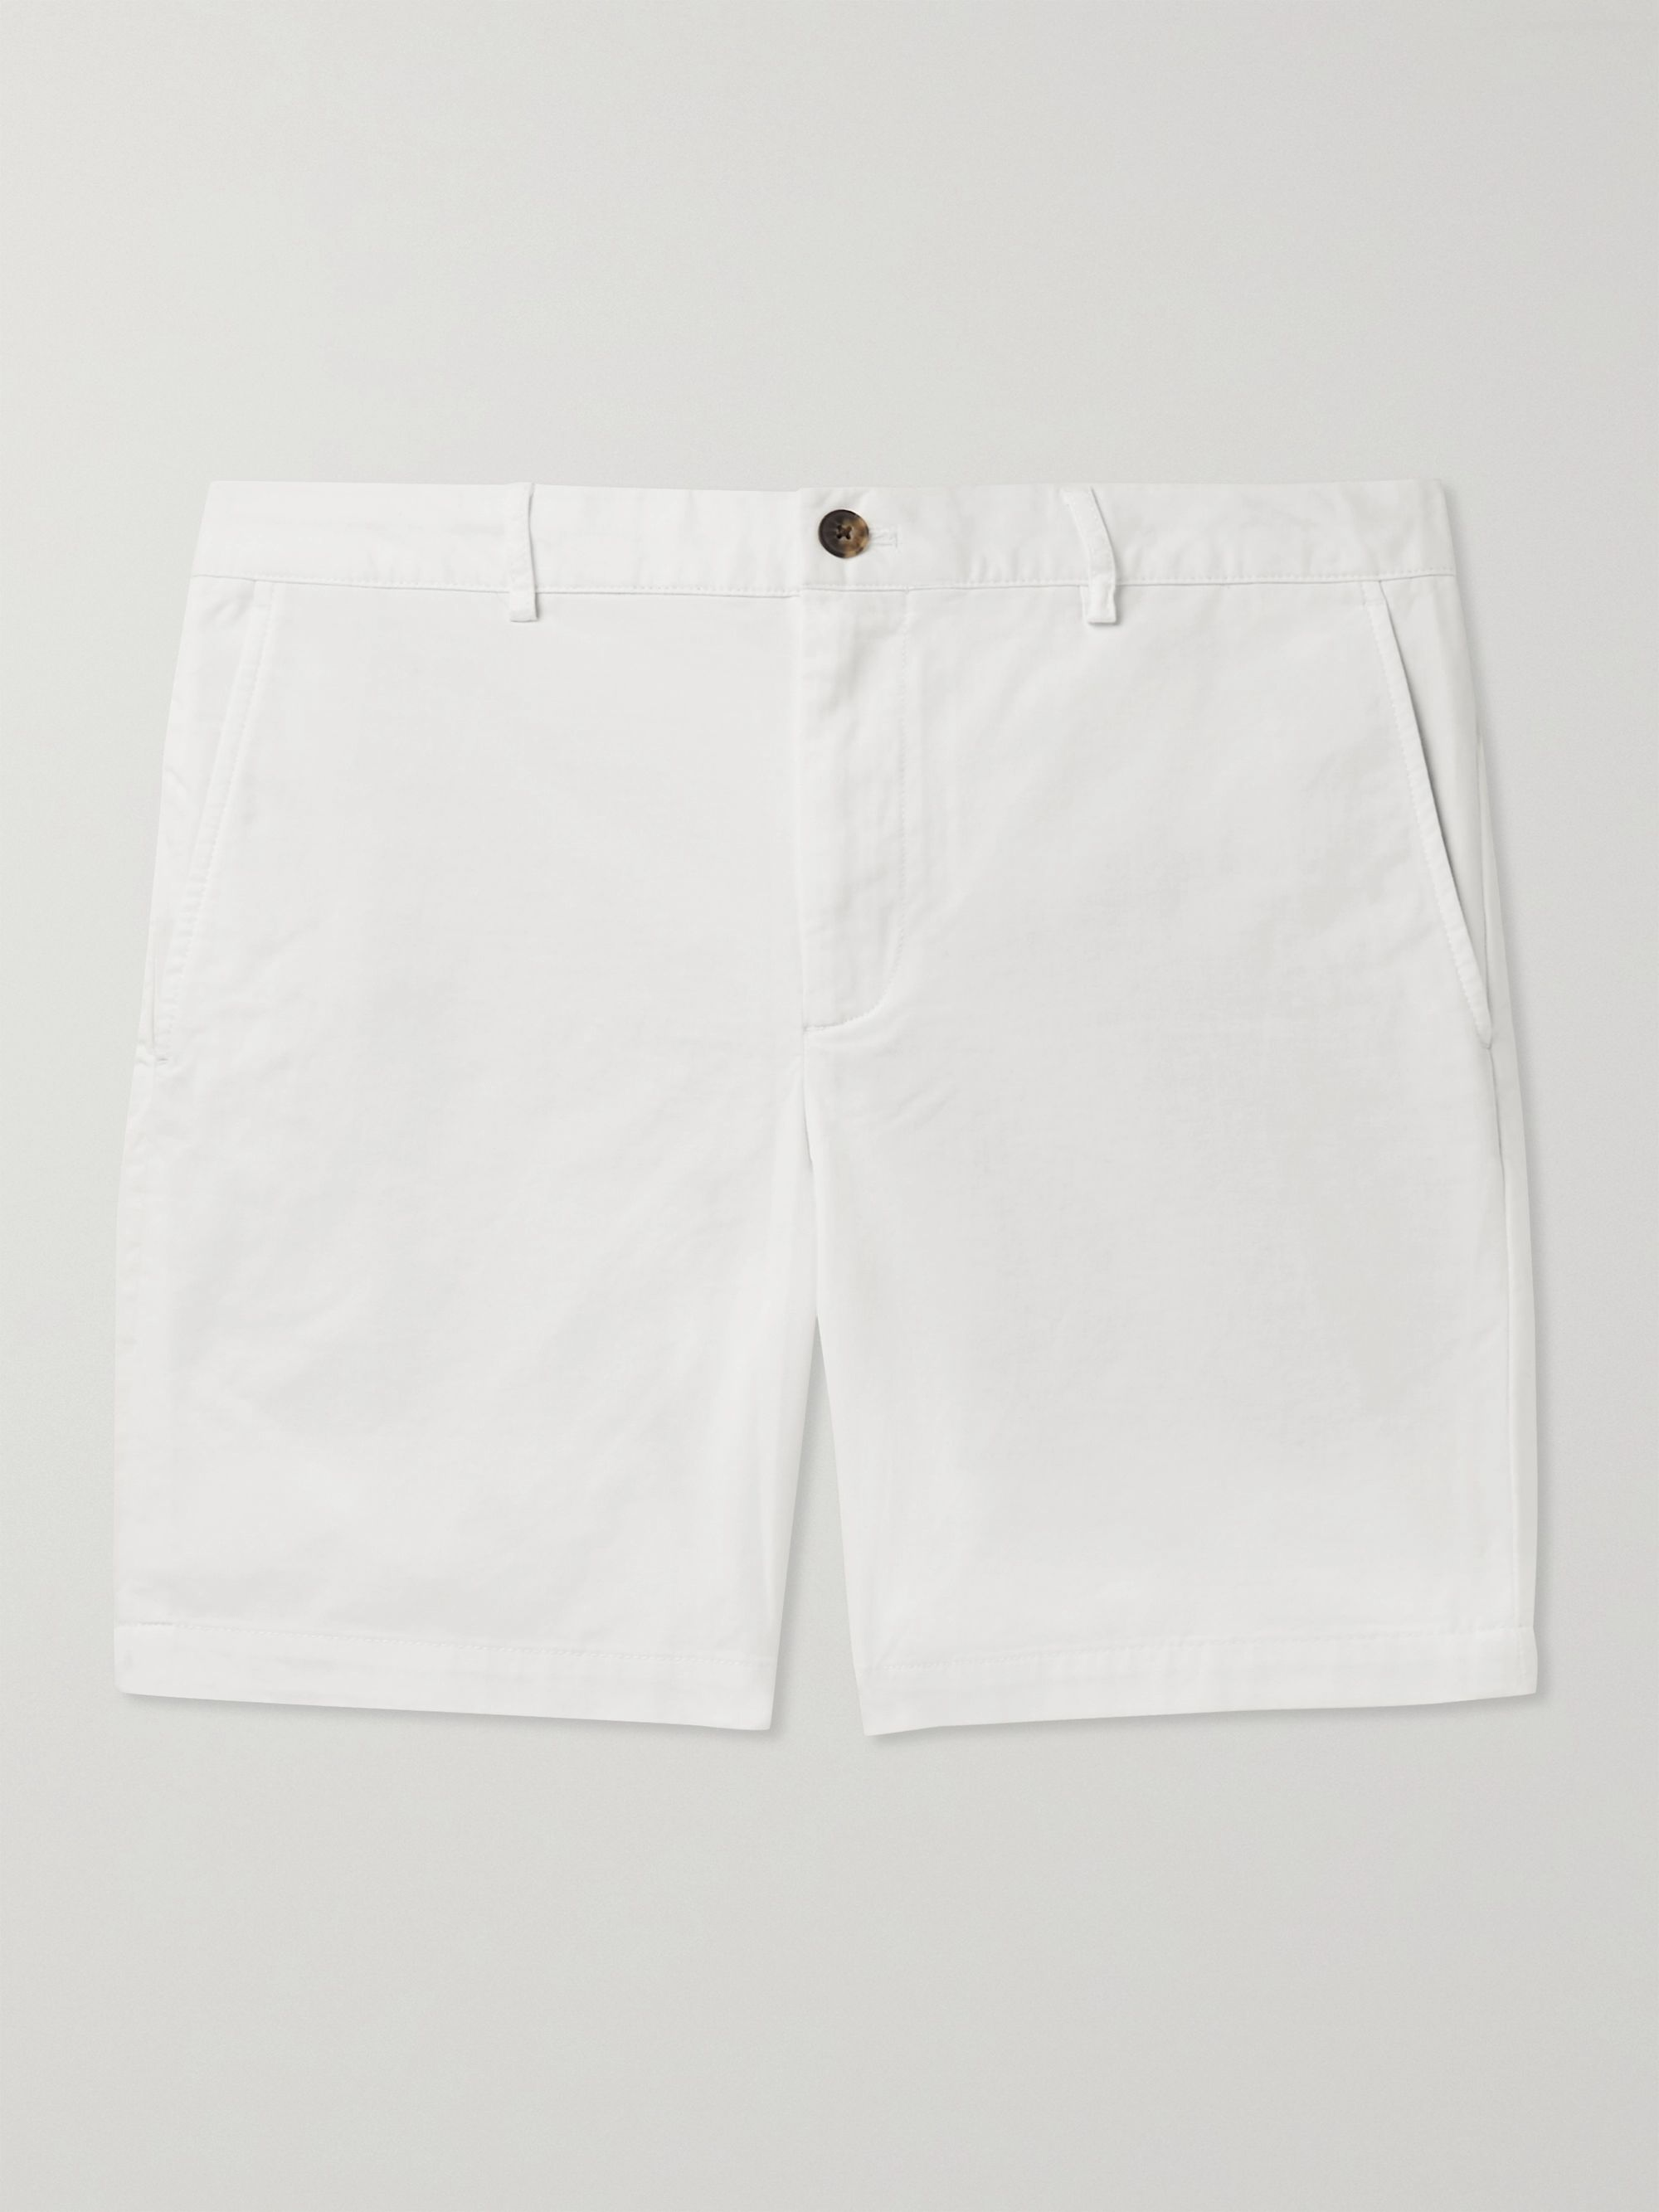 CLUB MONACO Baxter Slim-Fit Stretch-Cotton Twill Shorts